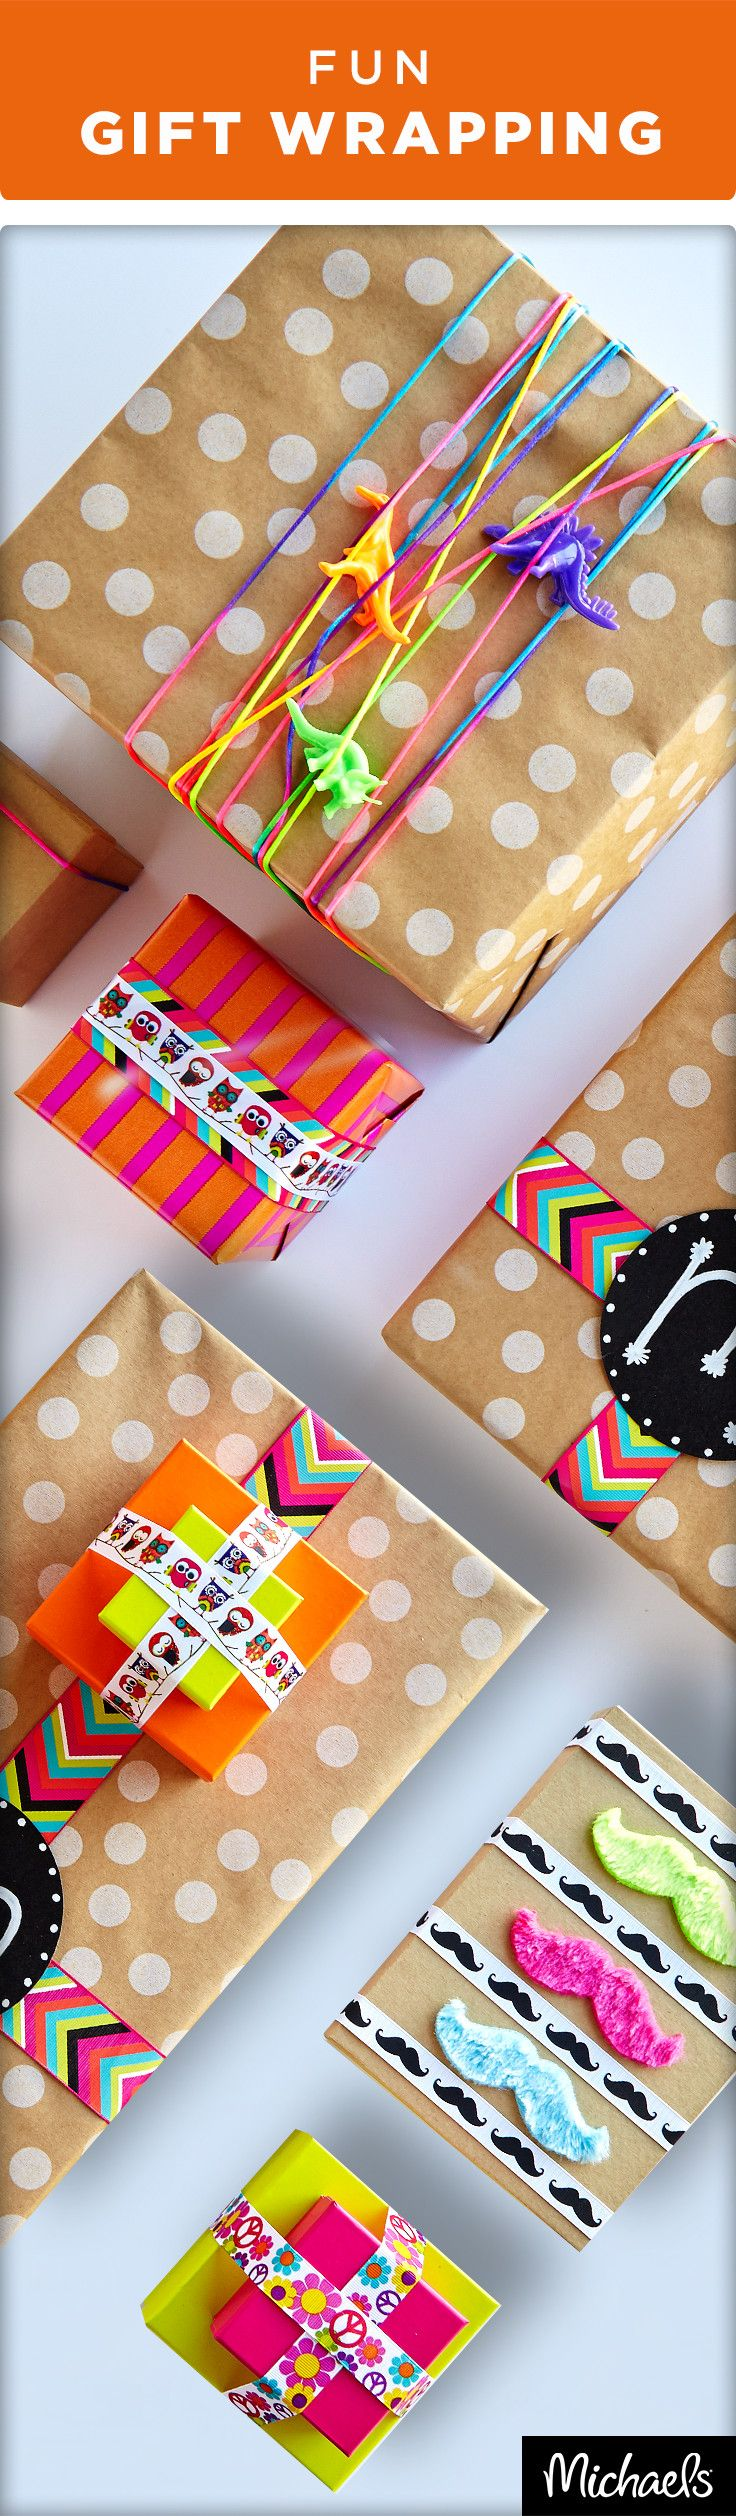 Add a little fun to your party packages with fun ribbons and mustache embellishments. Kraft wrapping paper can go a long way when you add colorful details. Get all of these fun gift wrapping supplies at your local Michaels store.